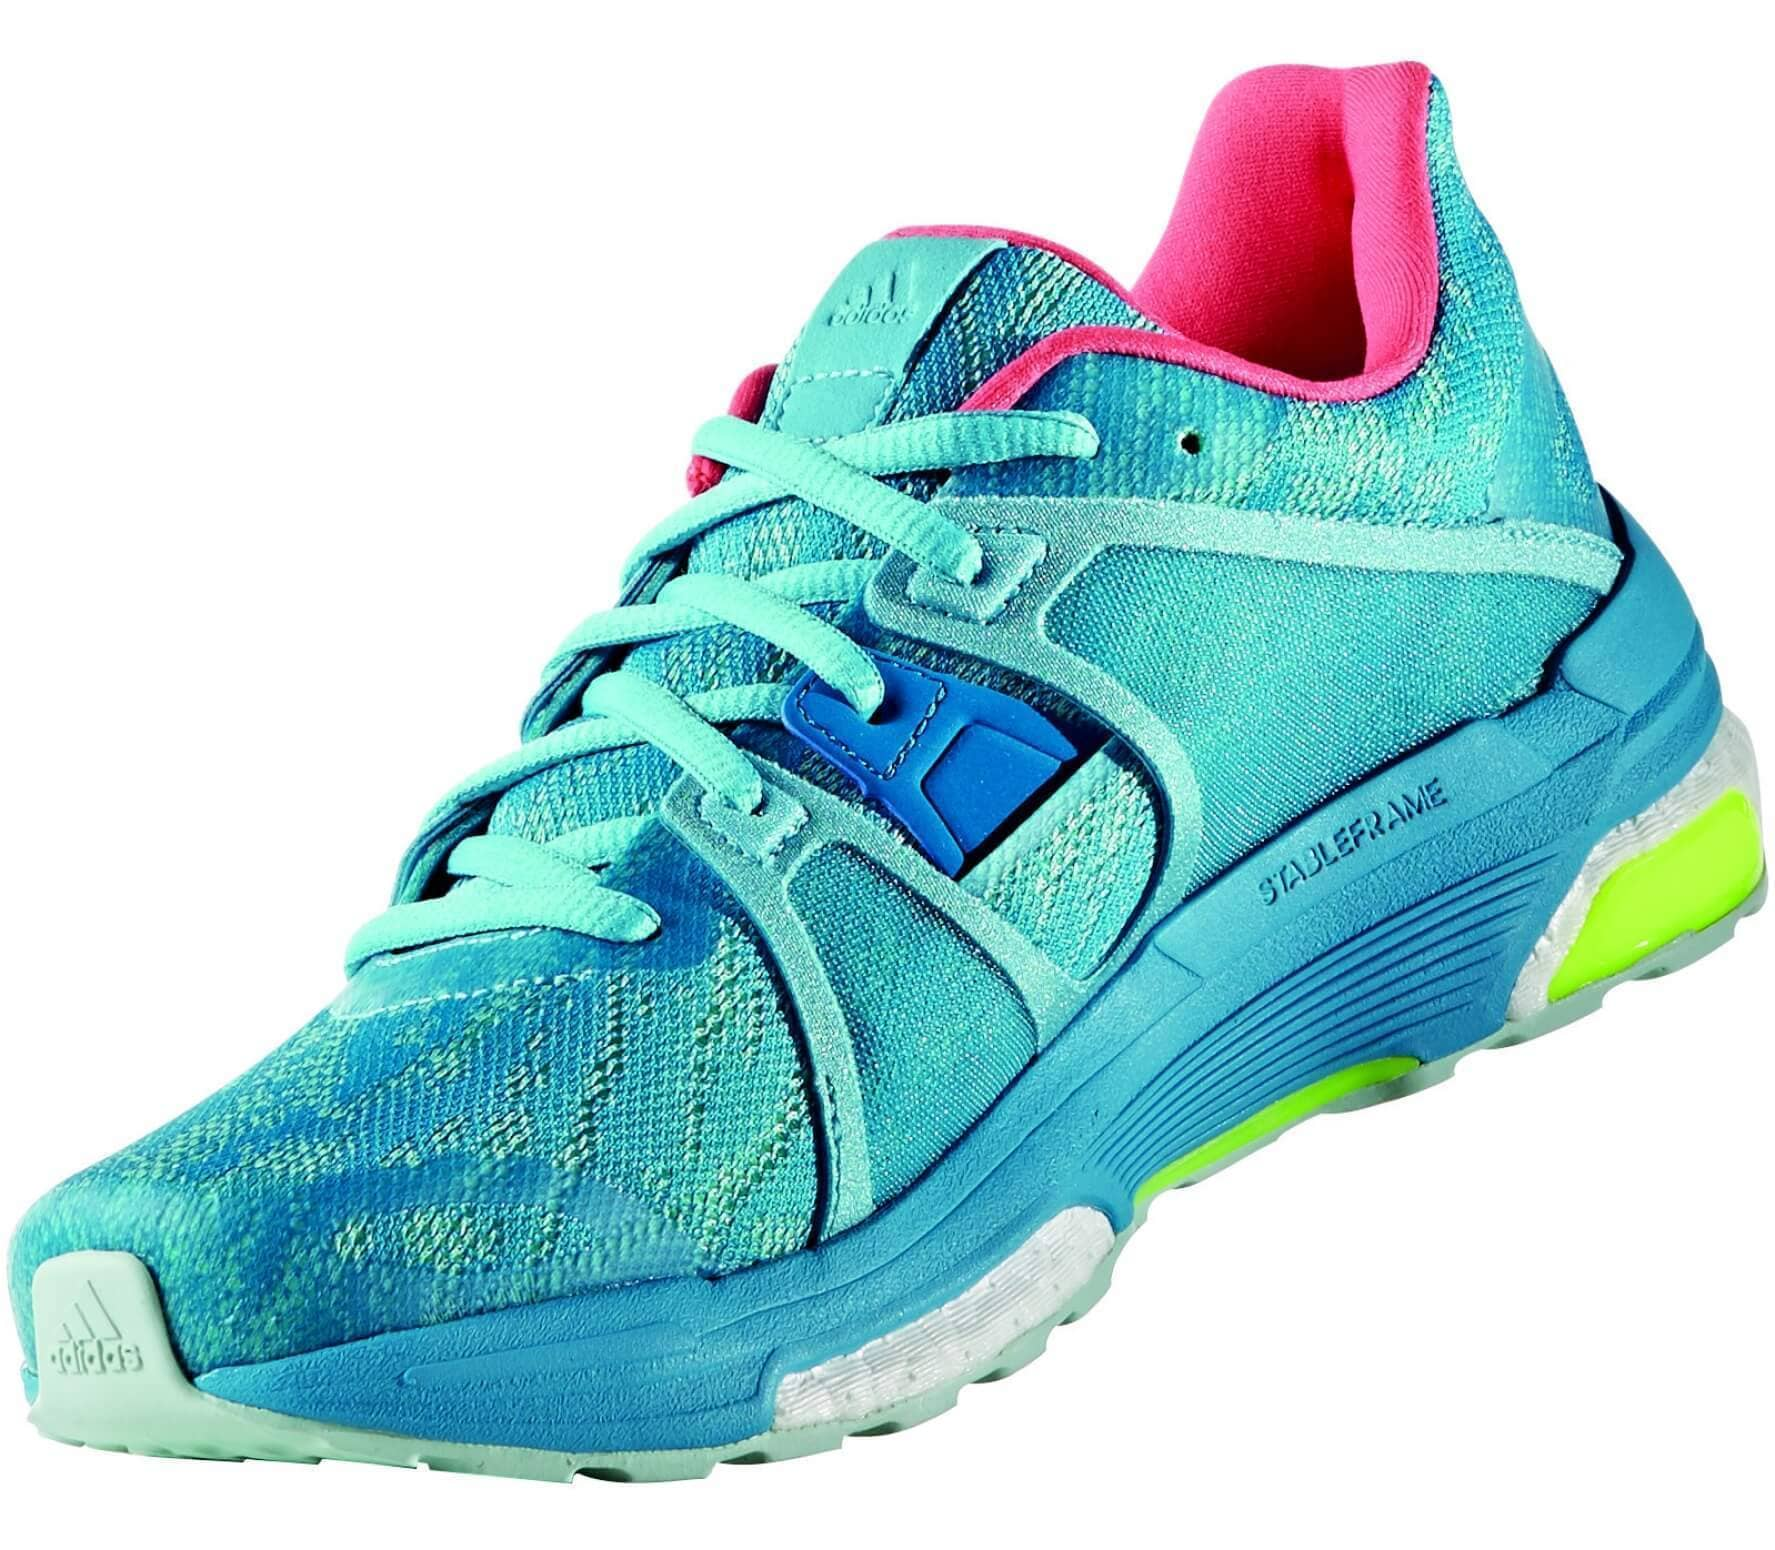 170a99bddd1fc Adidas - Supernova Sequence 9 women s running shoes (blue light red ...